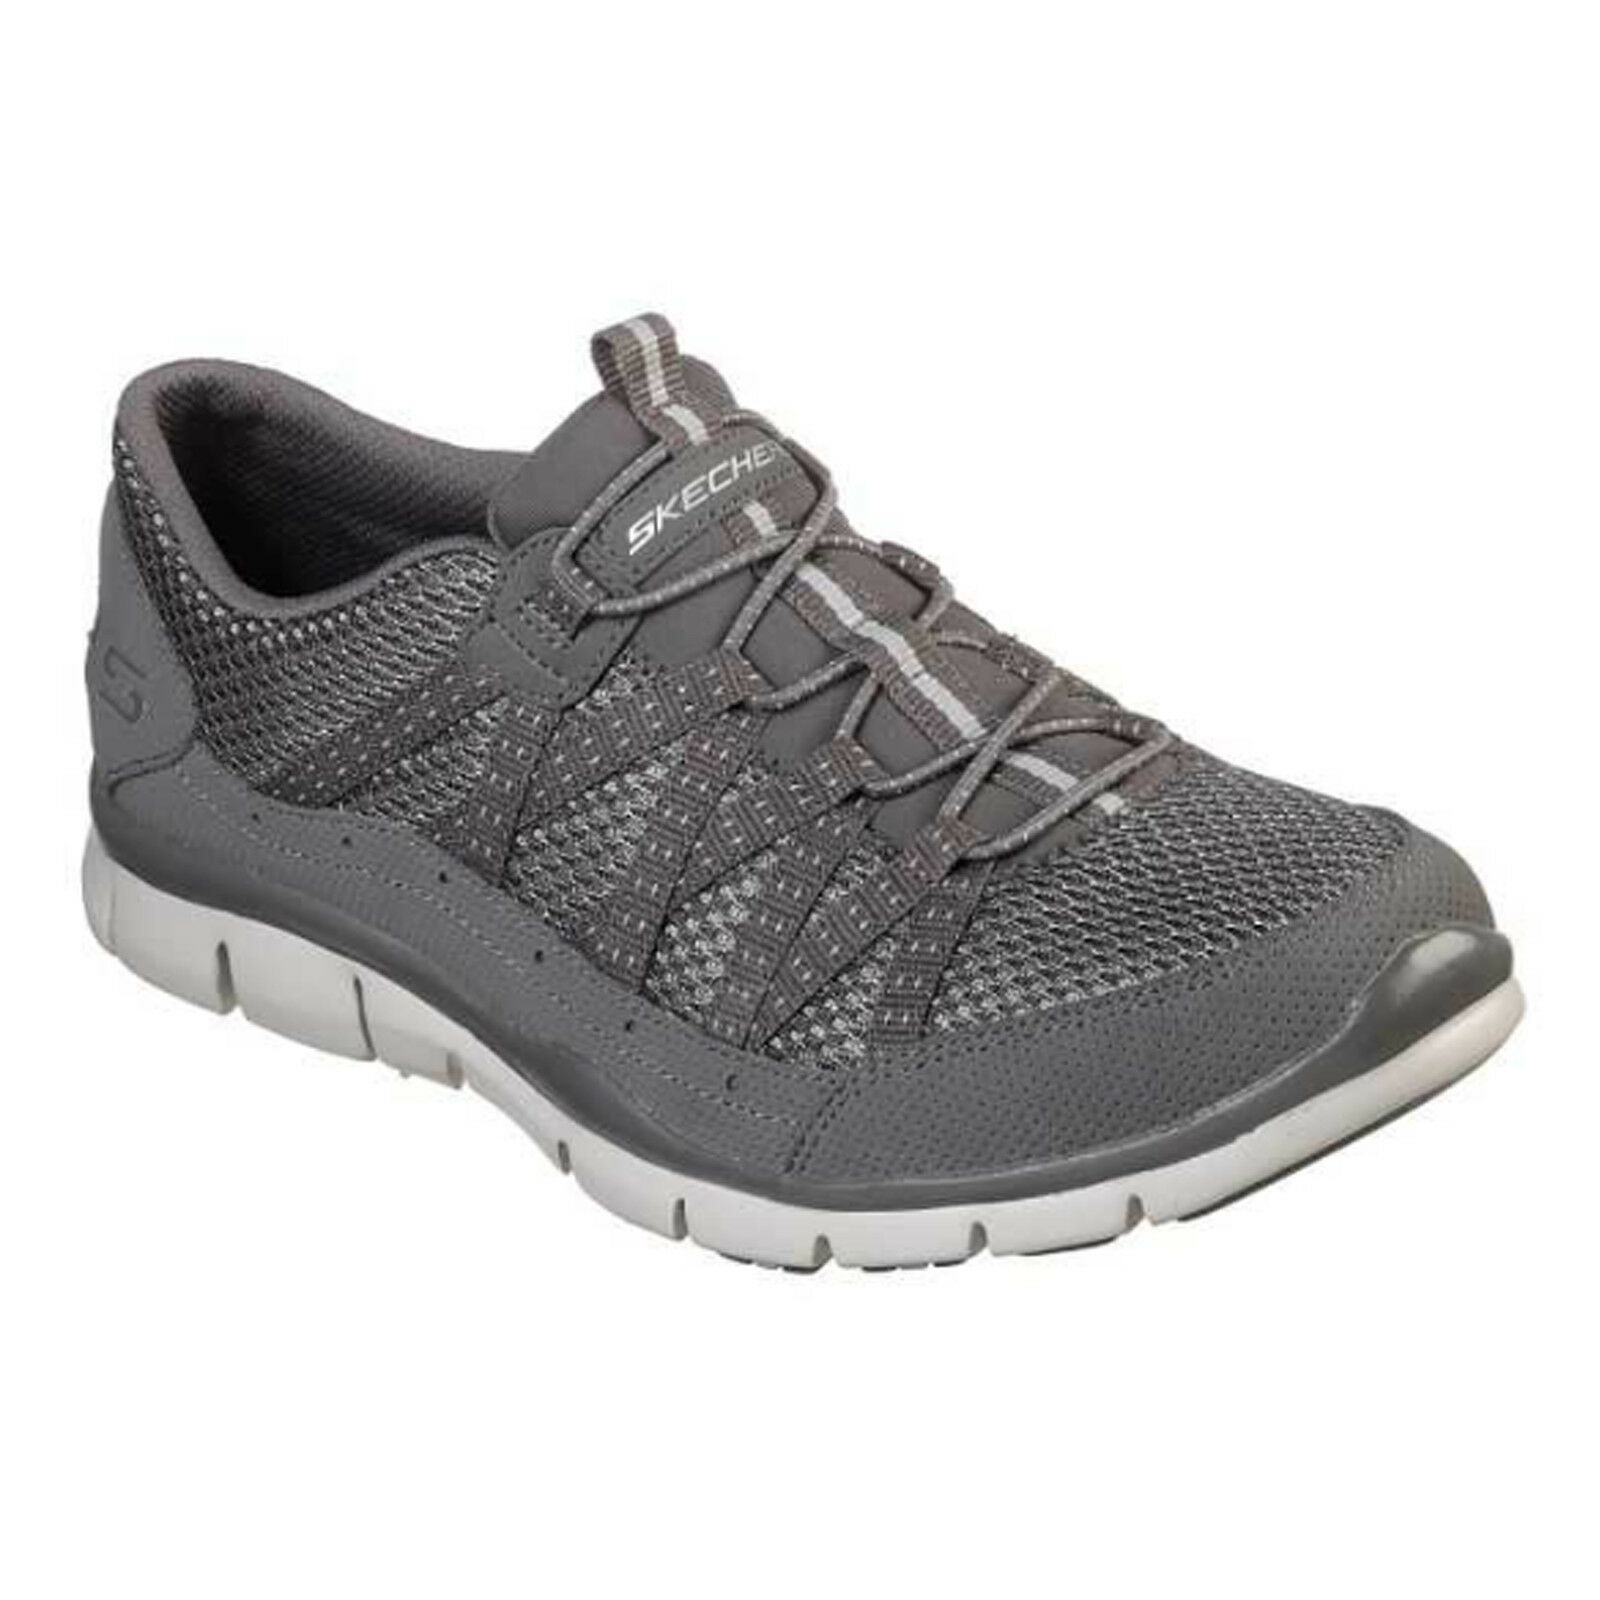 Skechers Gratis - Strolling Trainers Womens Faux Leather Elastic shoes 22823